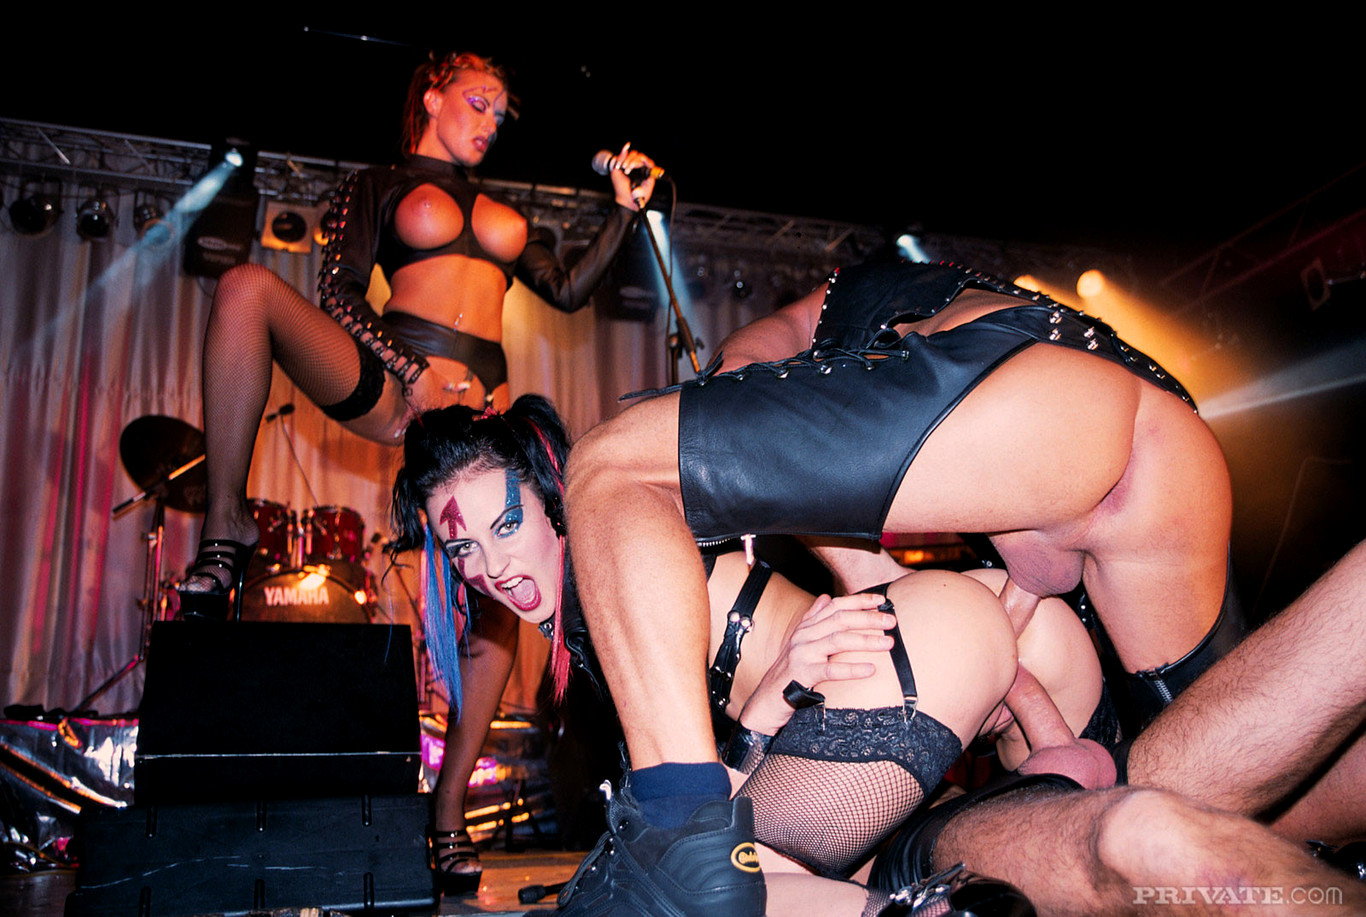 klein-concert-sex-pictures-sex-for